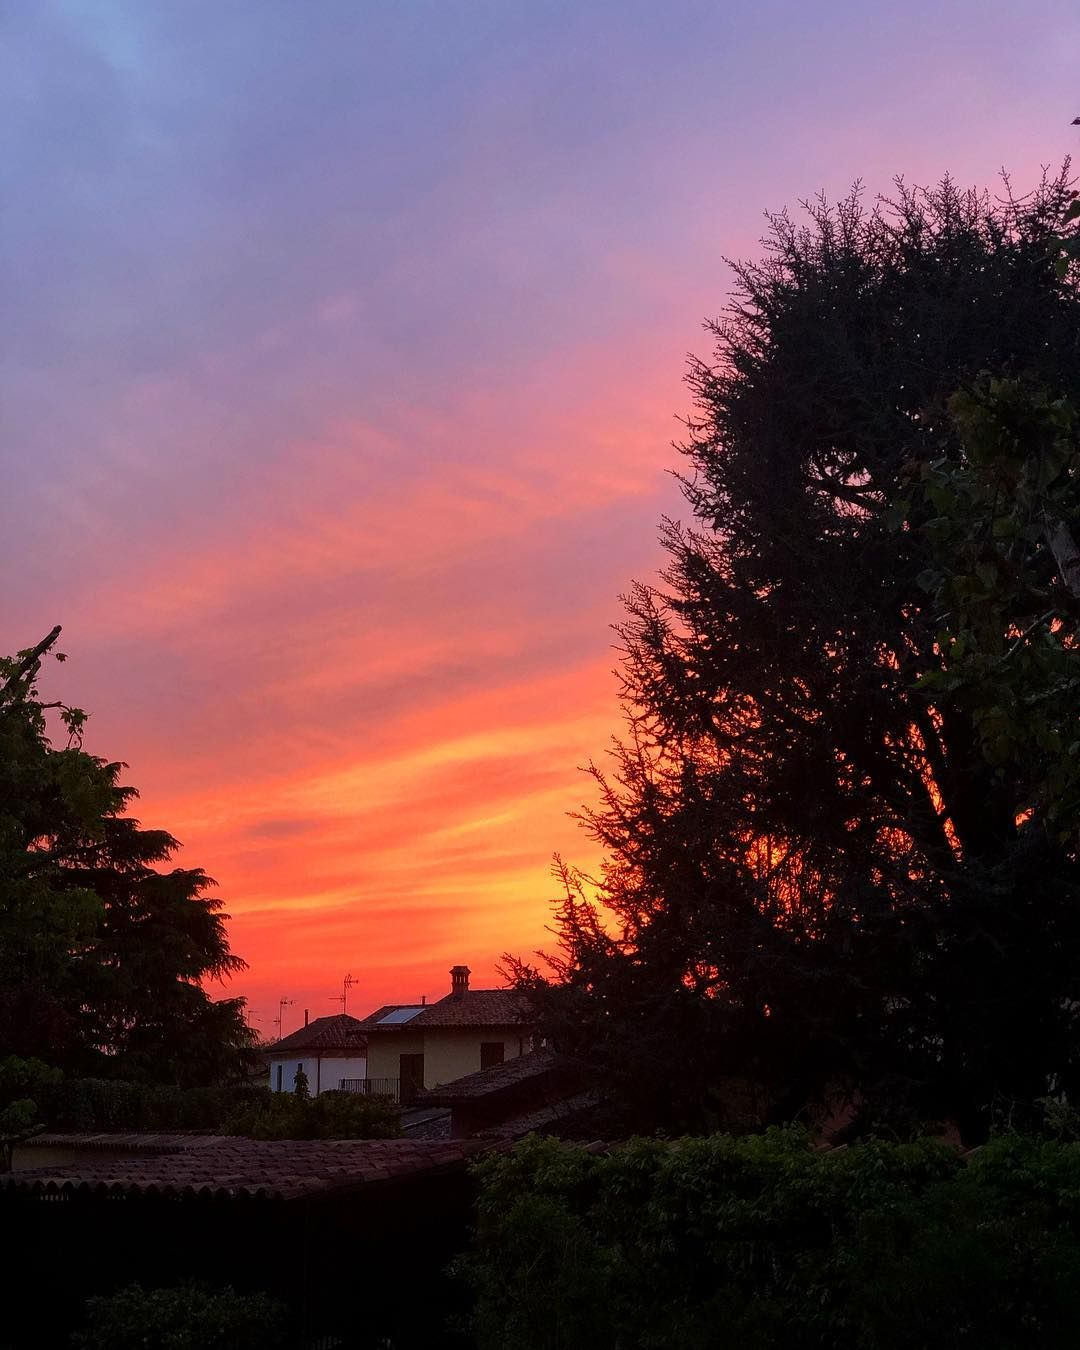 Yesterdays Sunset Was So Pretty Sunset Sun Pretty Spring Beautiful View Landscape Yesterdays Sunset Was So Pretty Sunset Landscape Sunrise Sunset Pink sky sunset sun trees nature